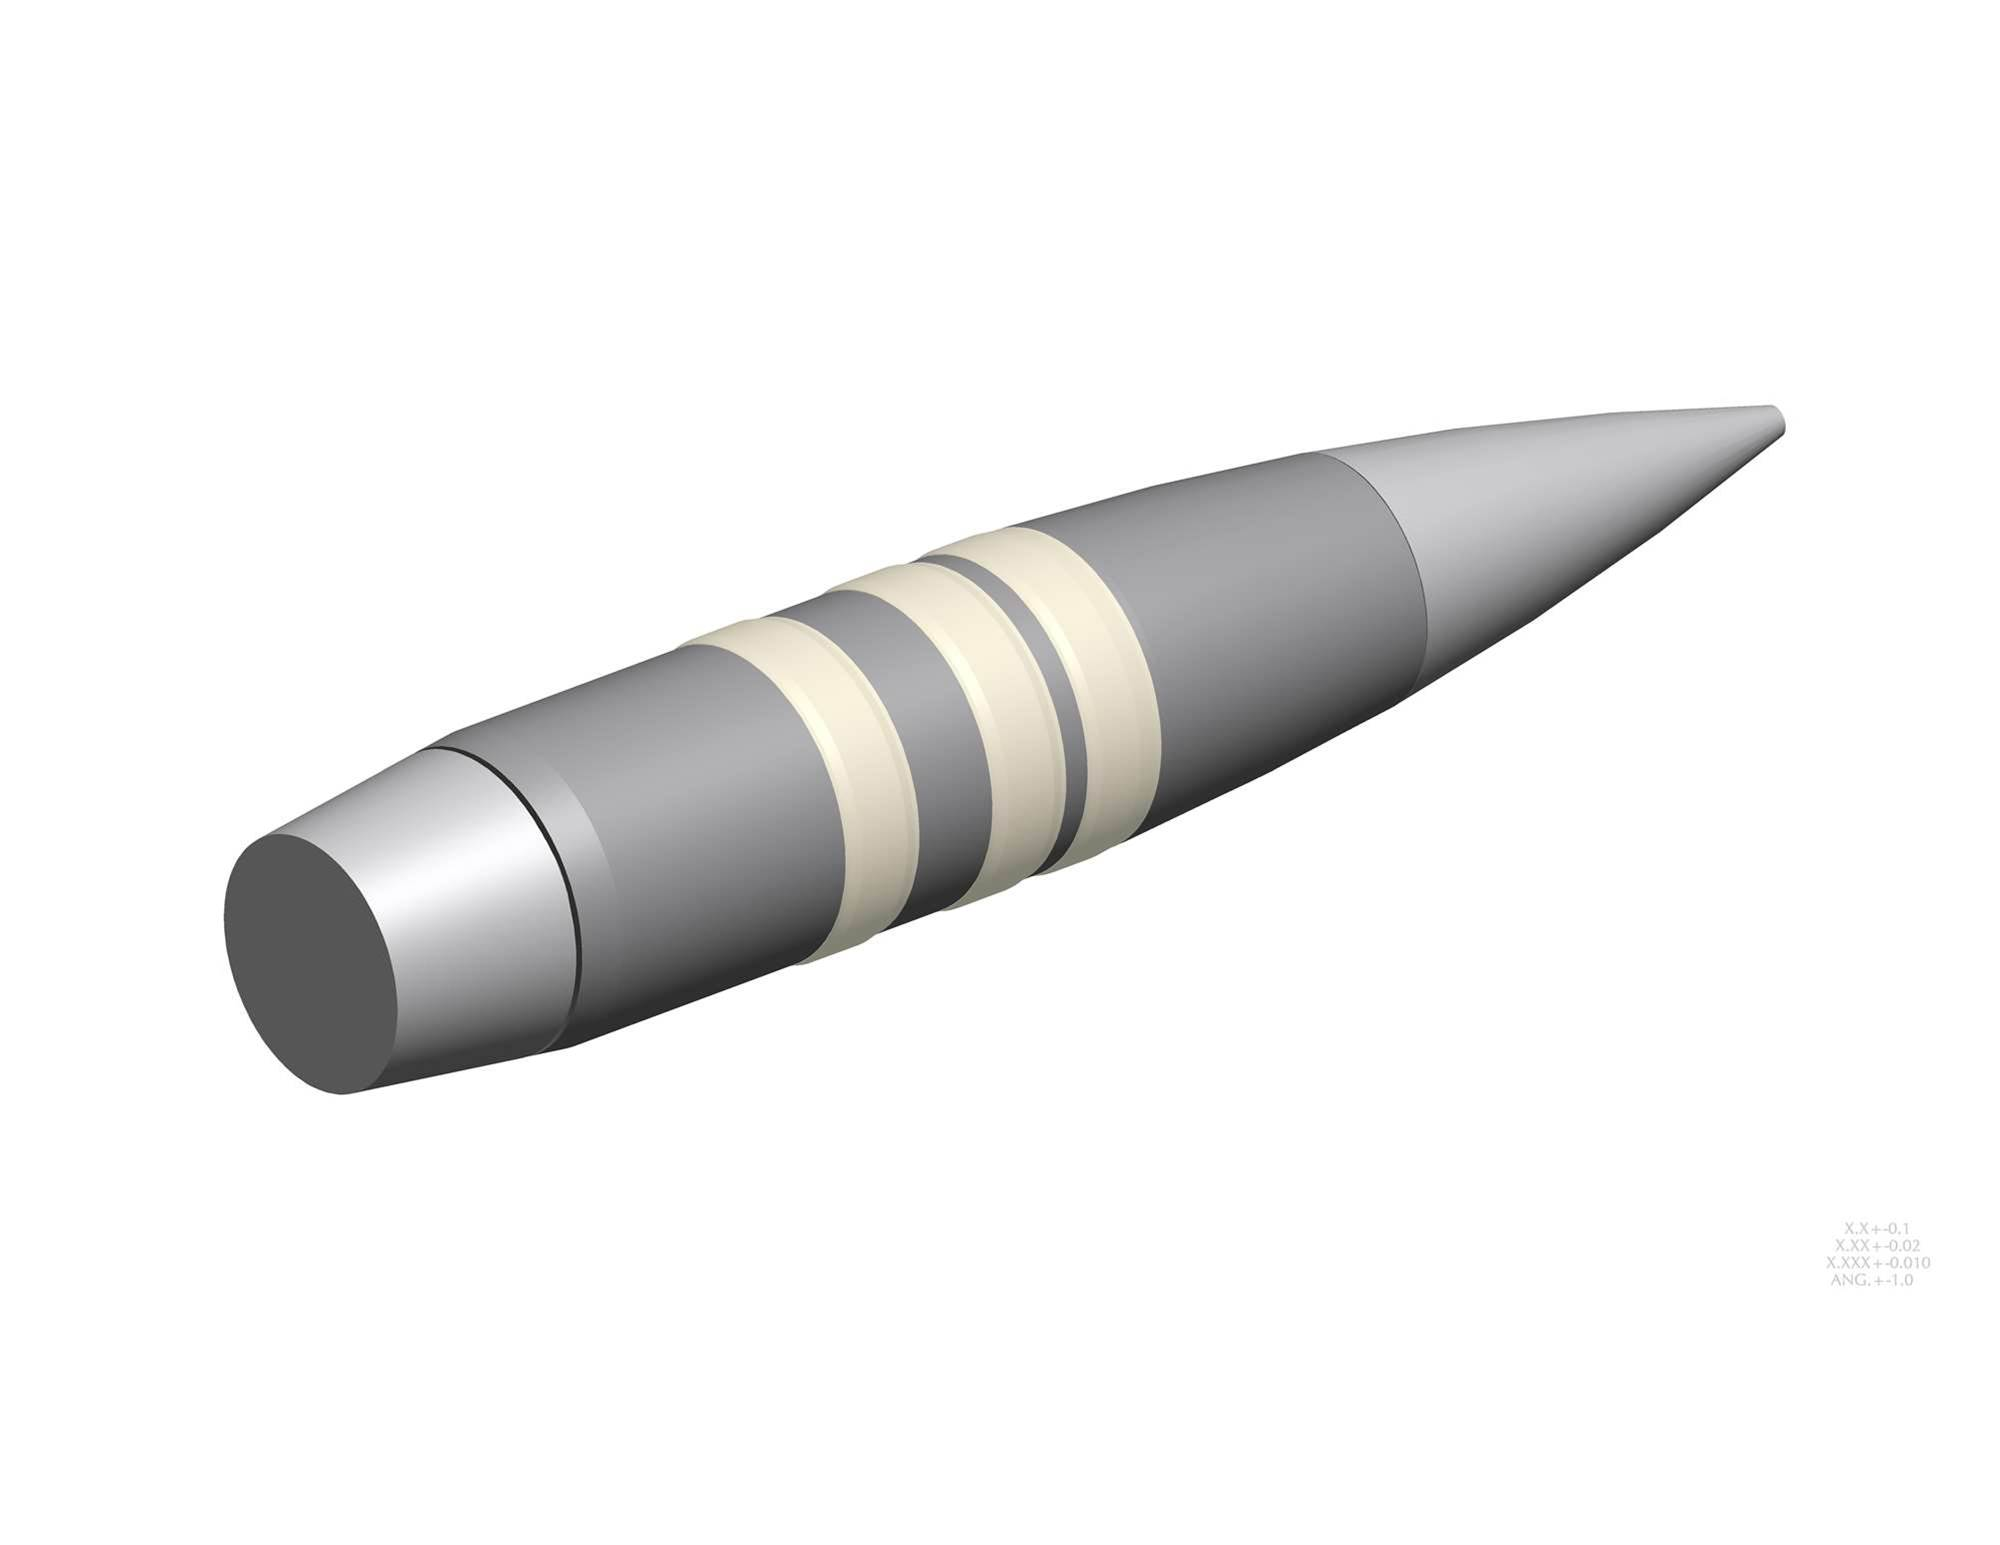 DARPA shows off EXACTO smart bullets